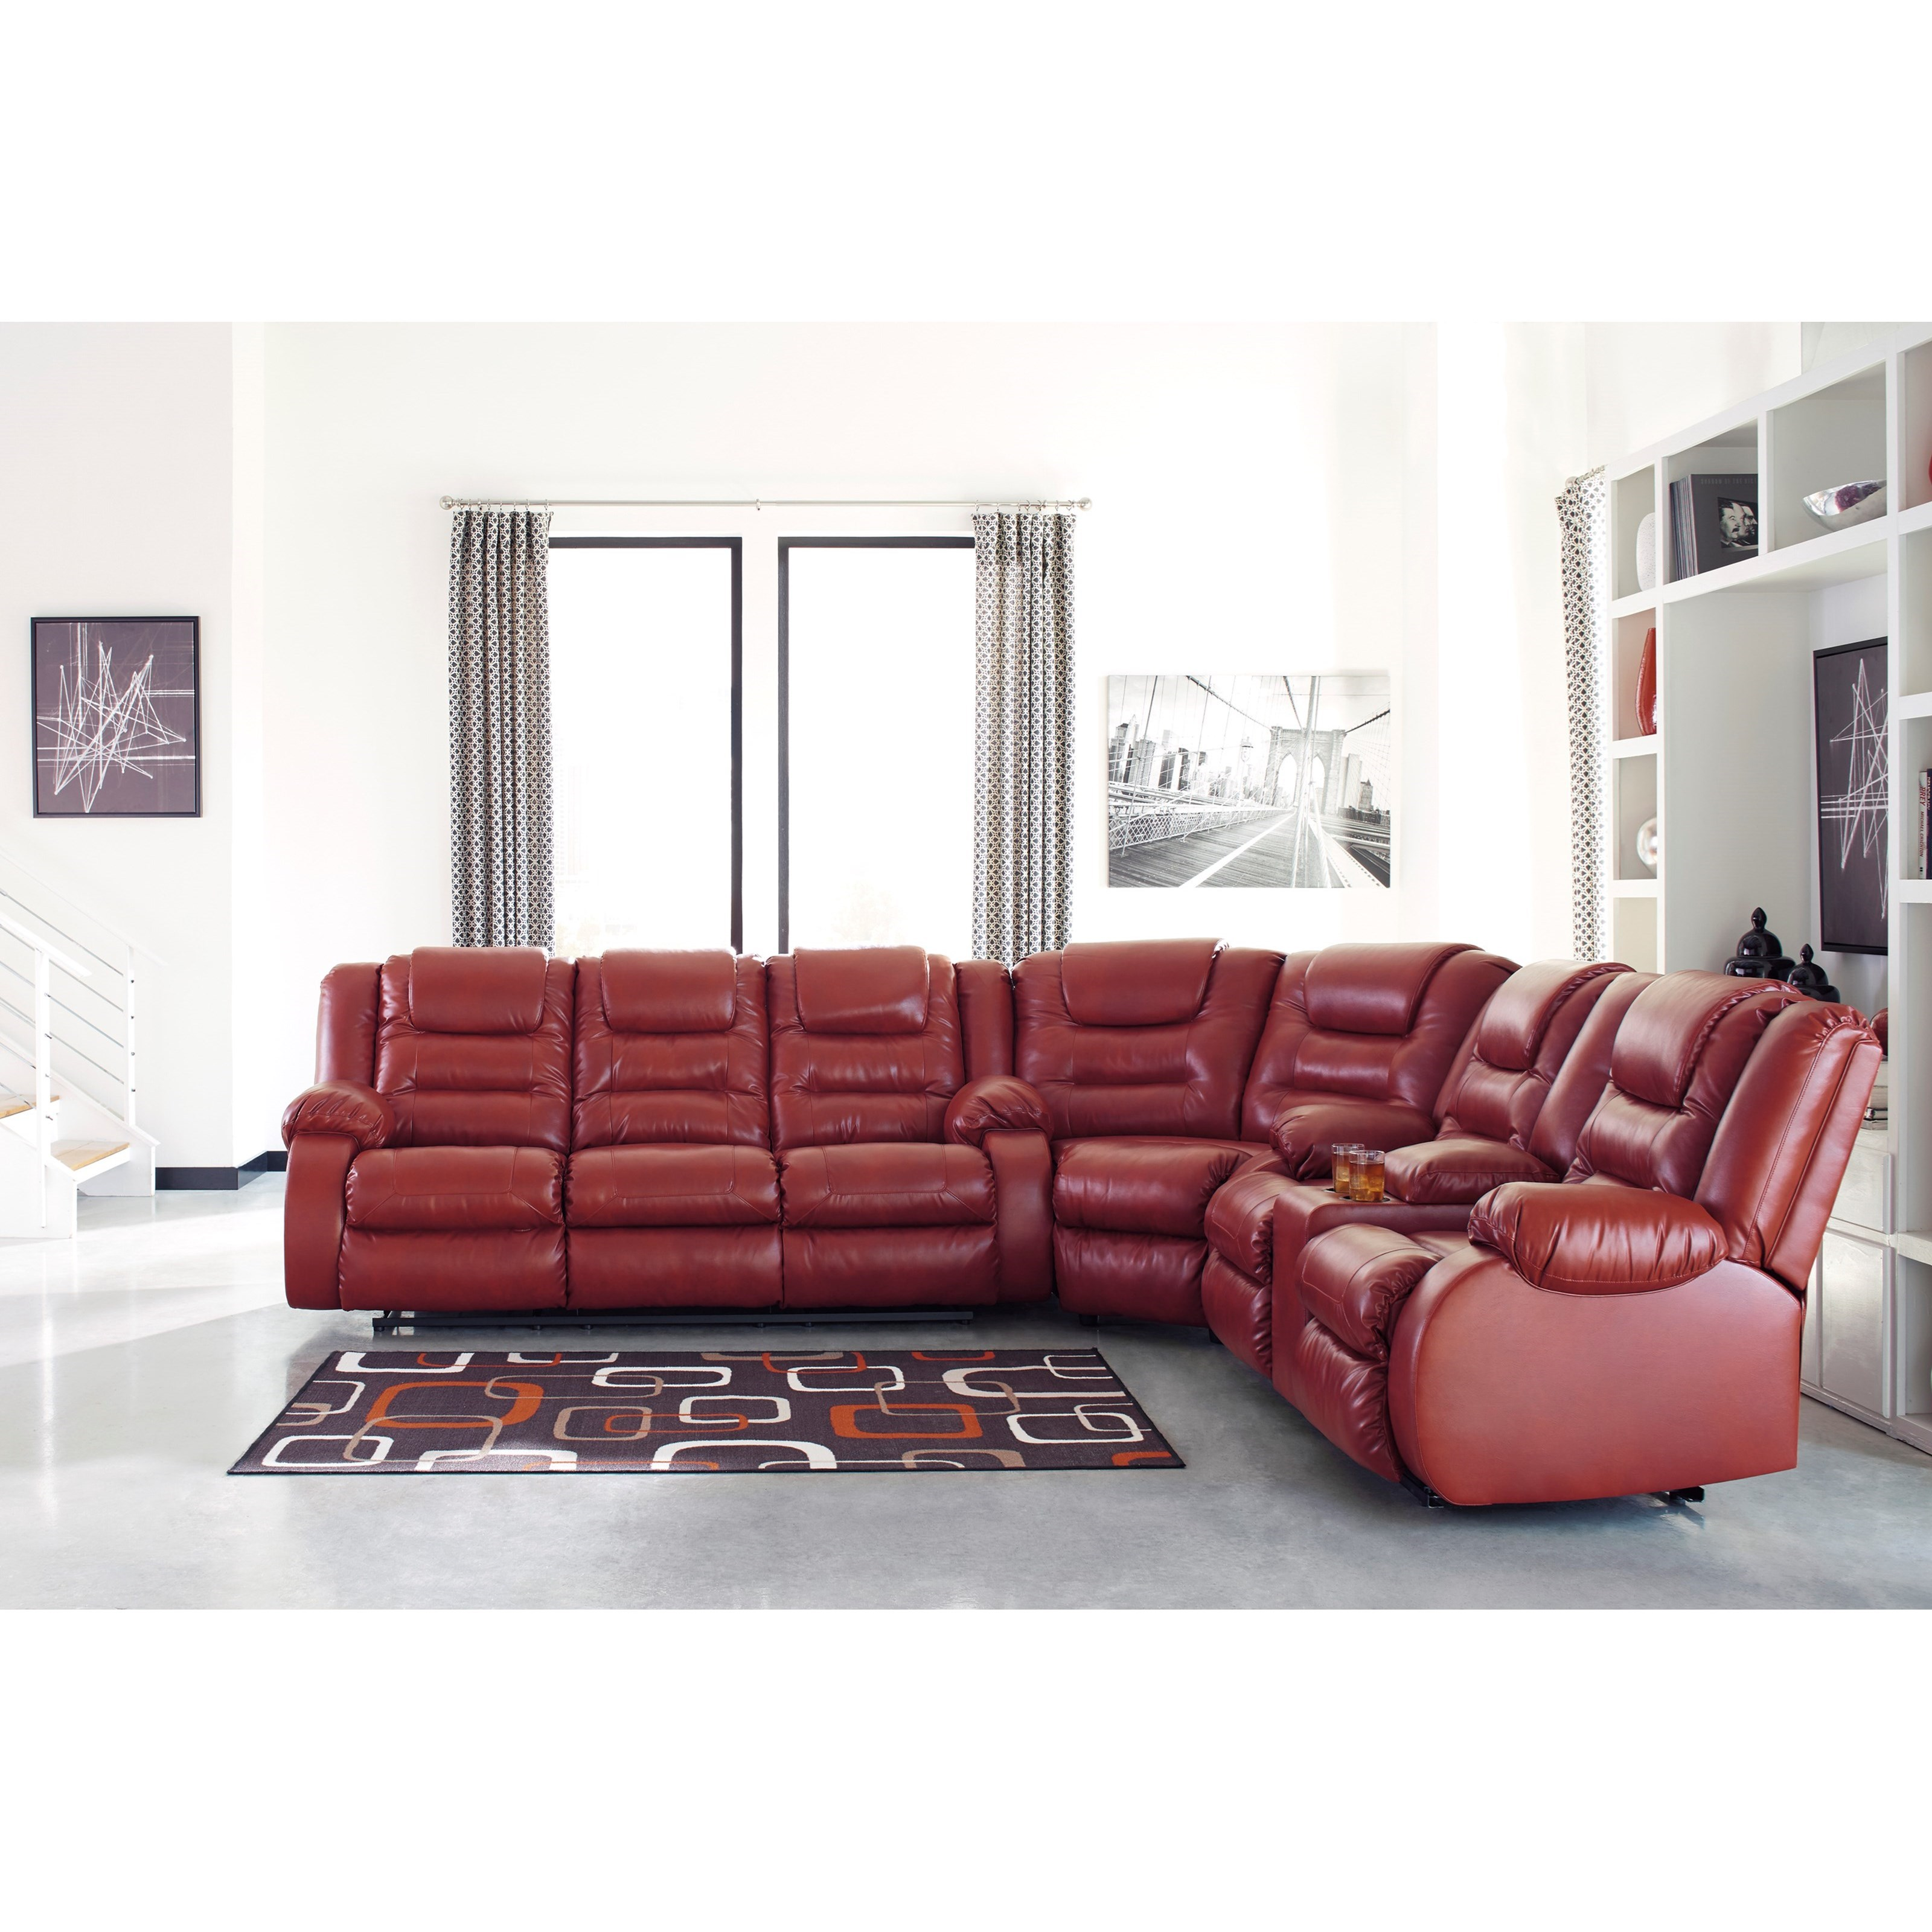 Sectional Sofas By Ashley Furniture: Signature Design By Ashley Vacherie Casual Reclining